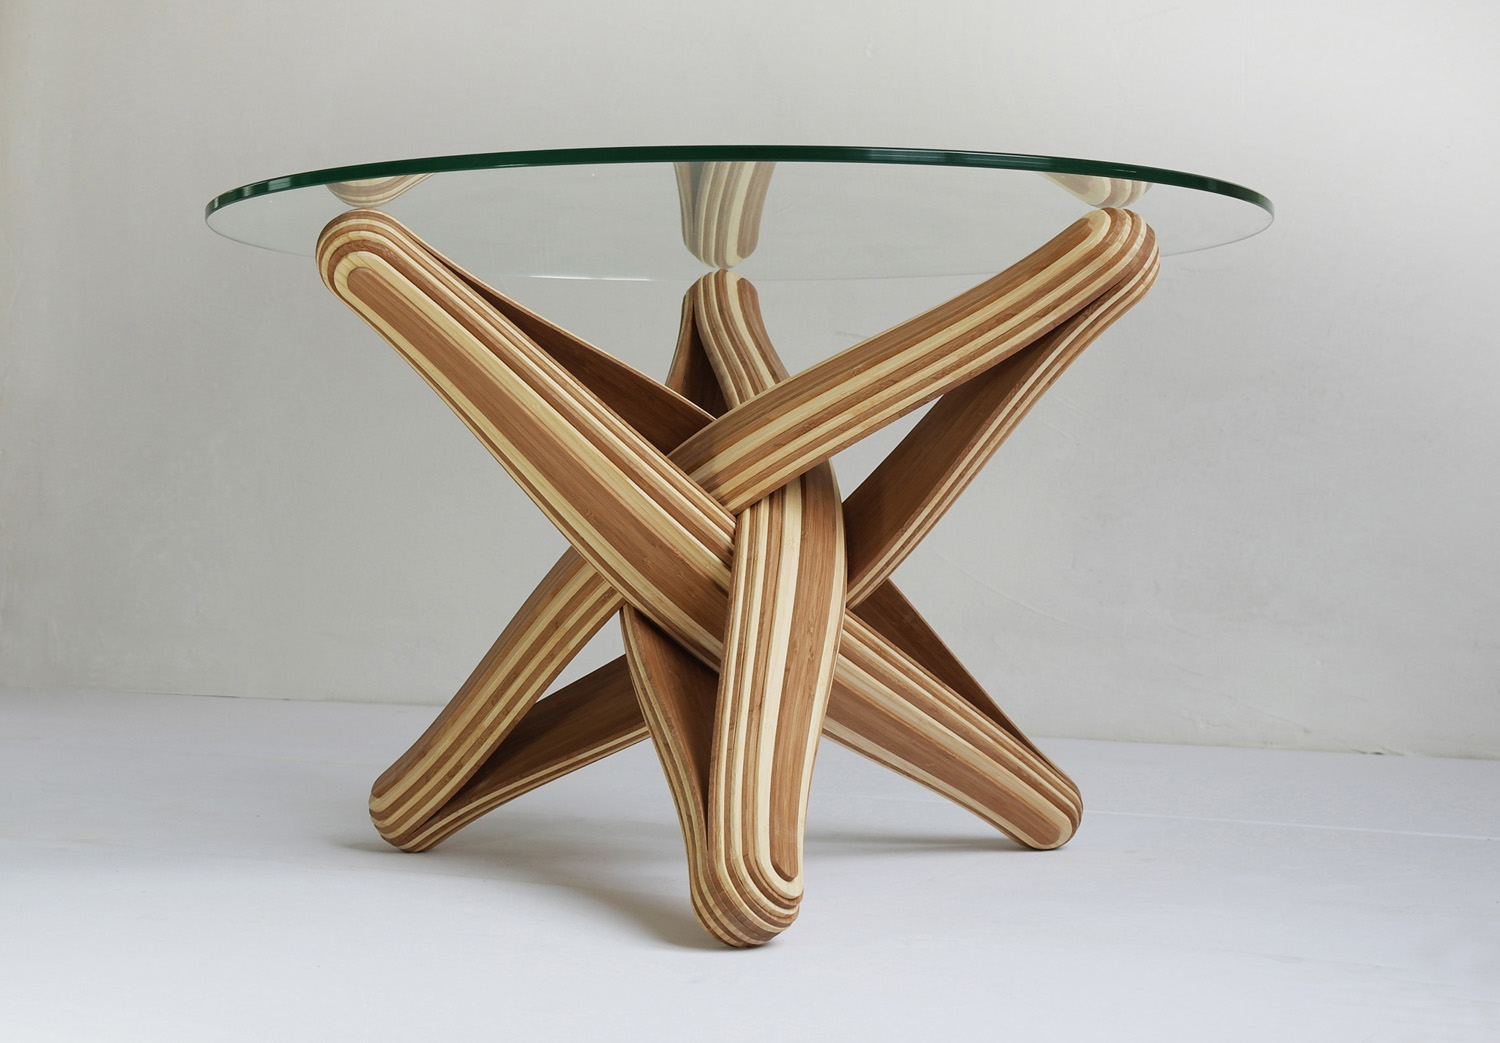 Table Furniture coffee table | inhabitat - green design, innovation, architecture